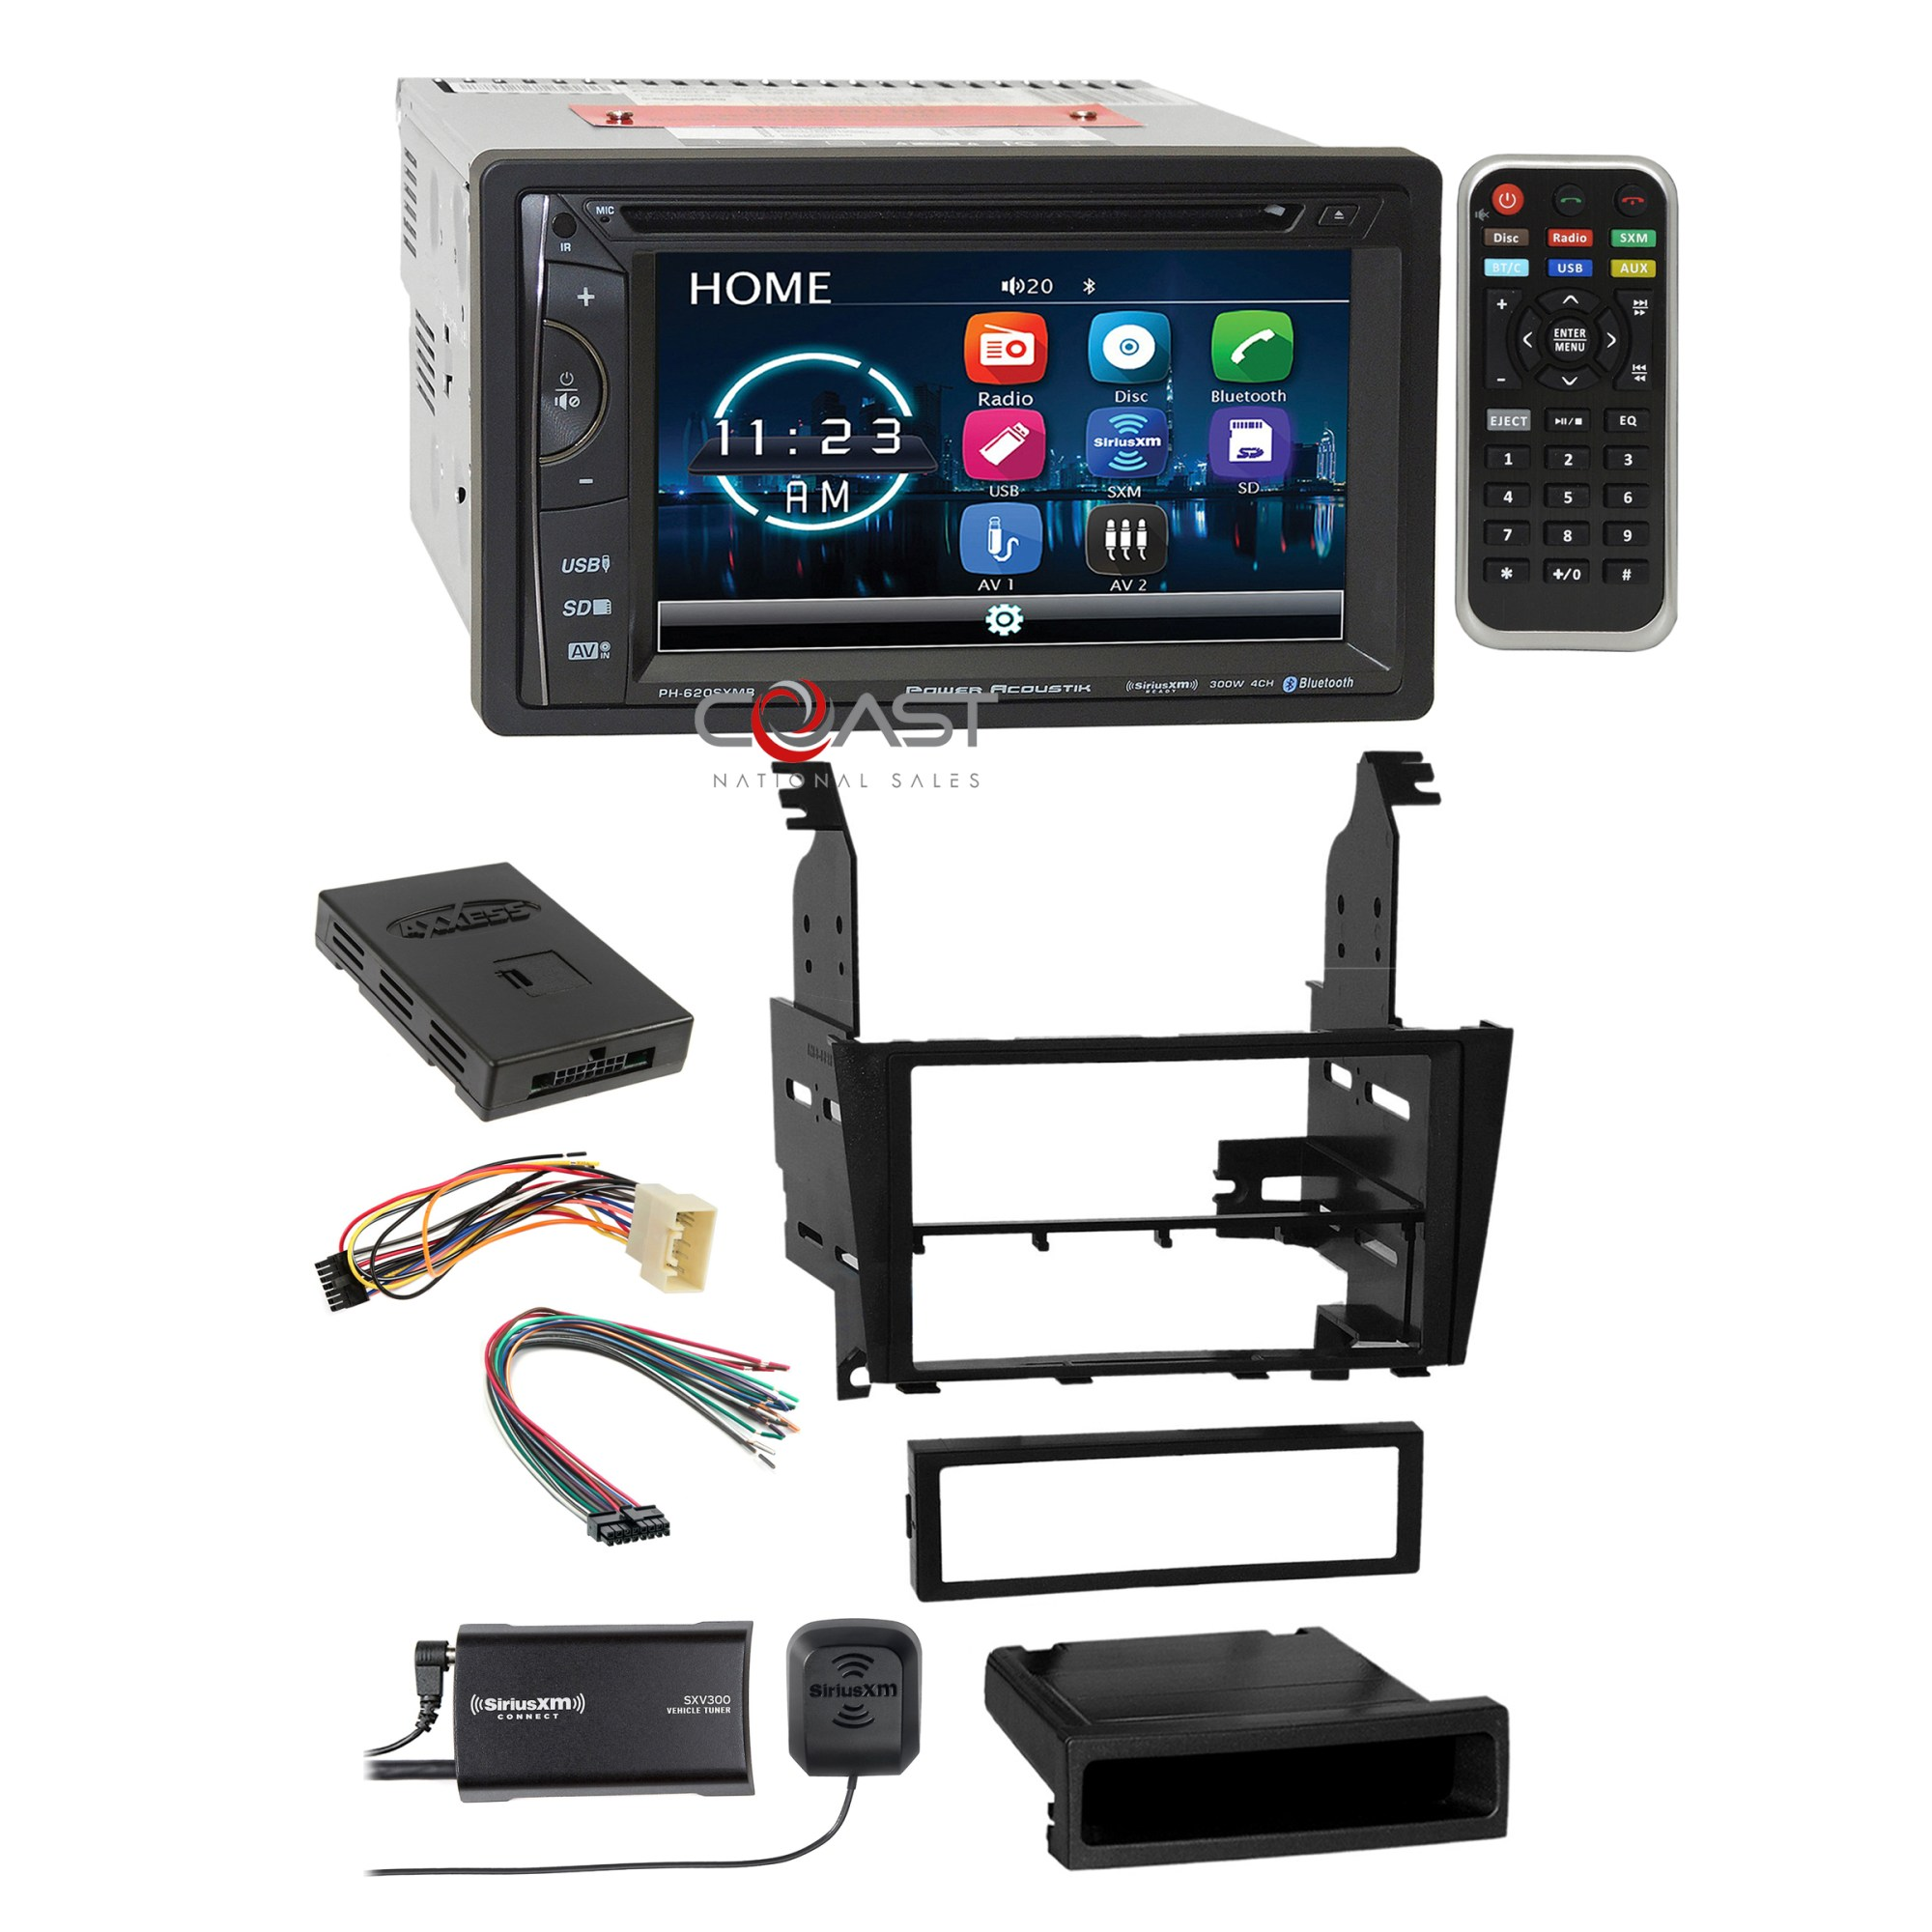 hight resolution of details about power acoustik dvd bt sirius stereo dash kit jbl harness for 02 05 lexus is300